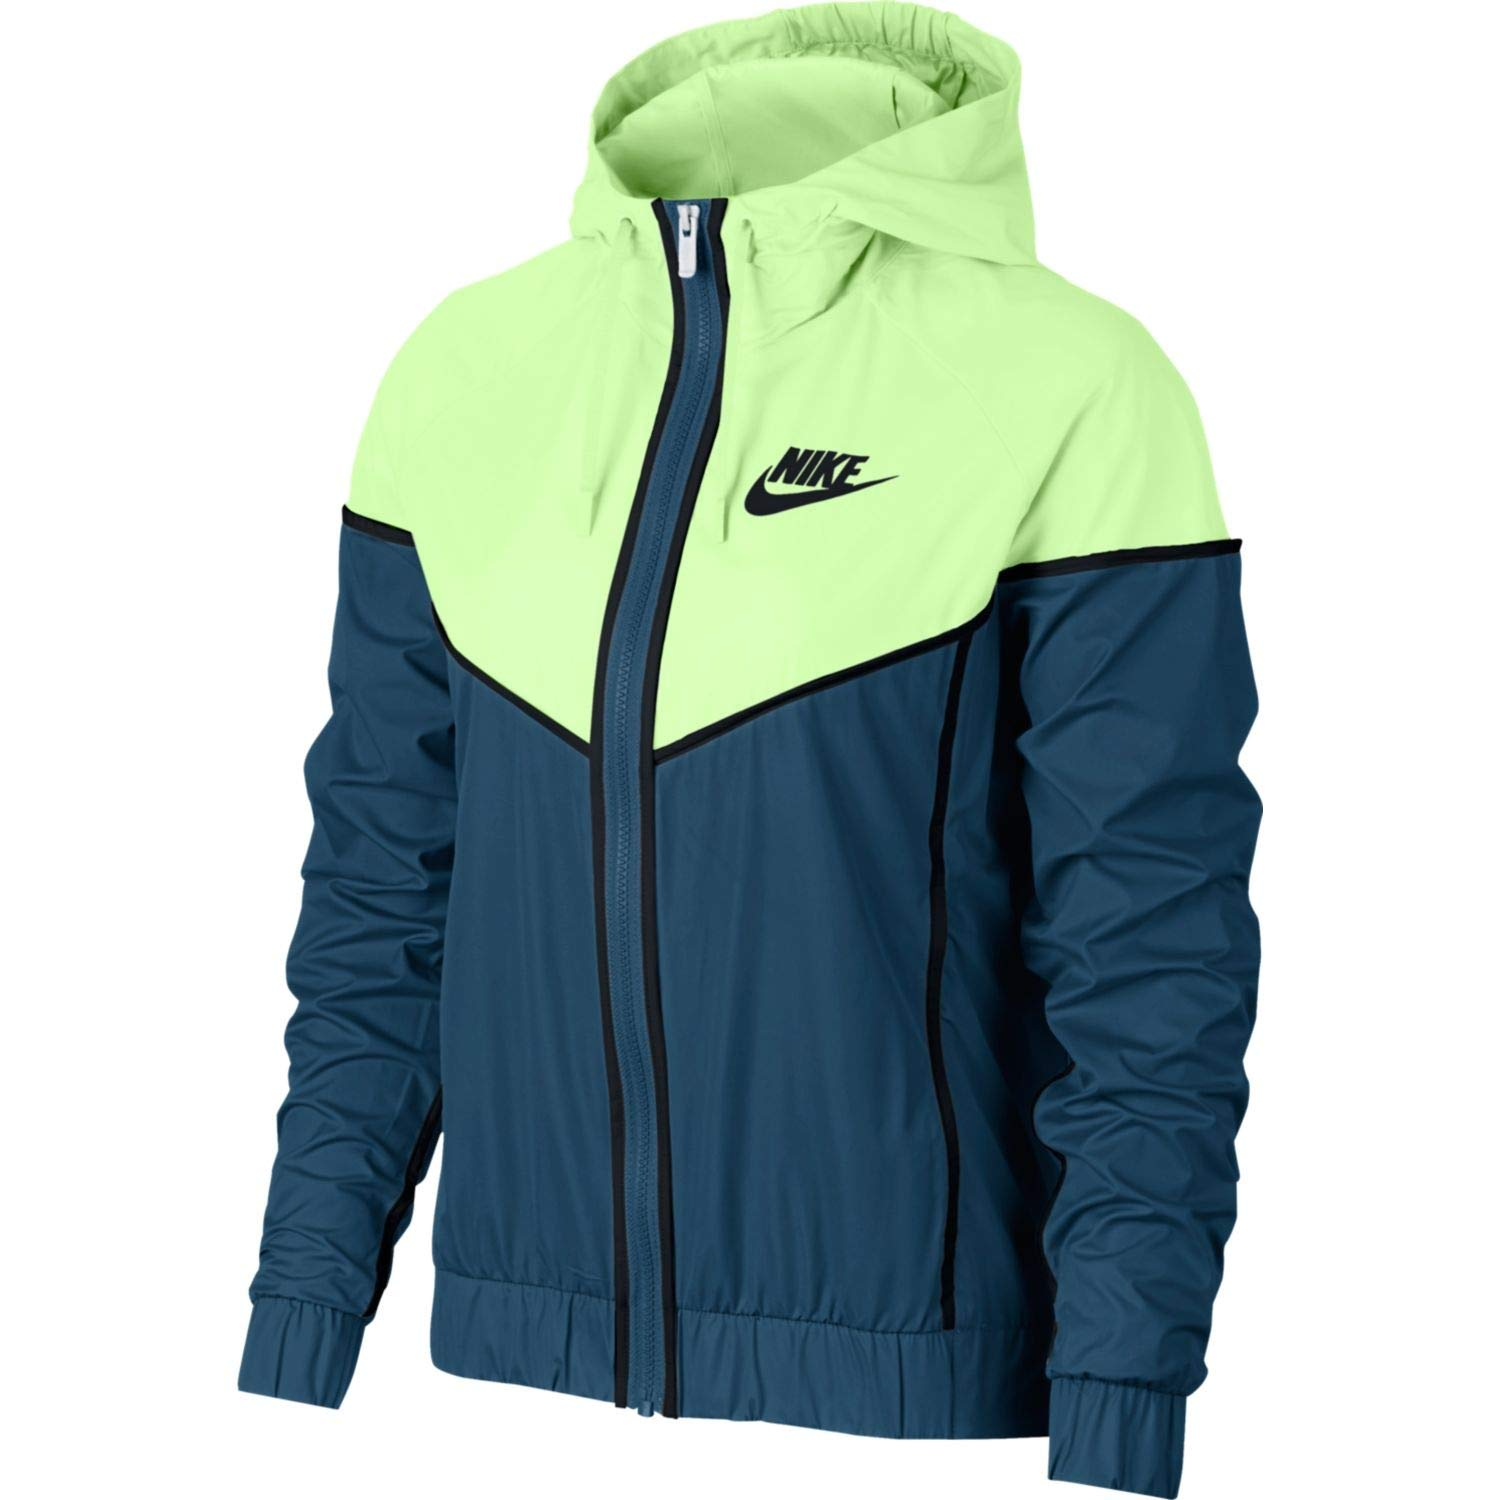 Nike Womens Windrunner Track Jacket Blue Force/Barley Volt/Black 883495-476 Size X-Small